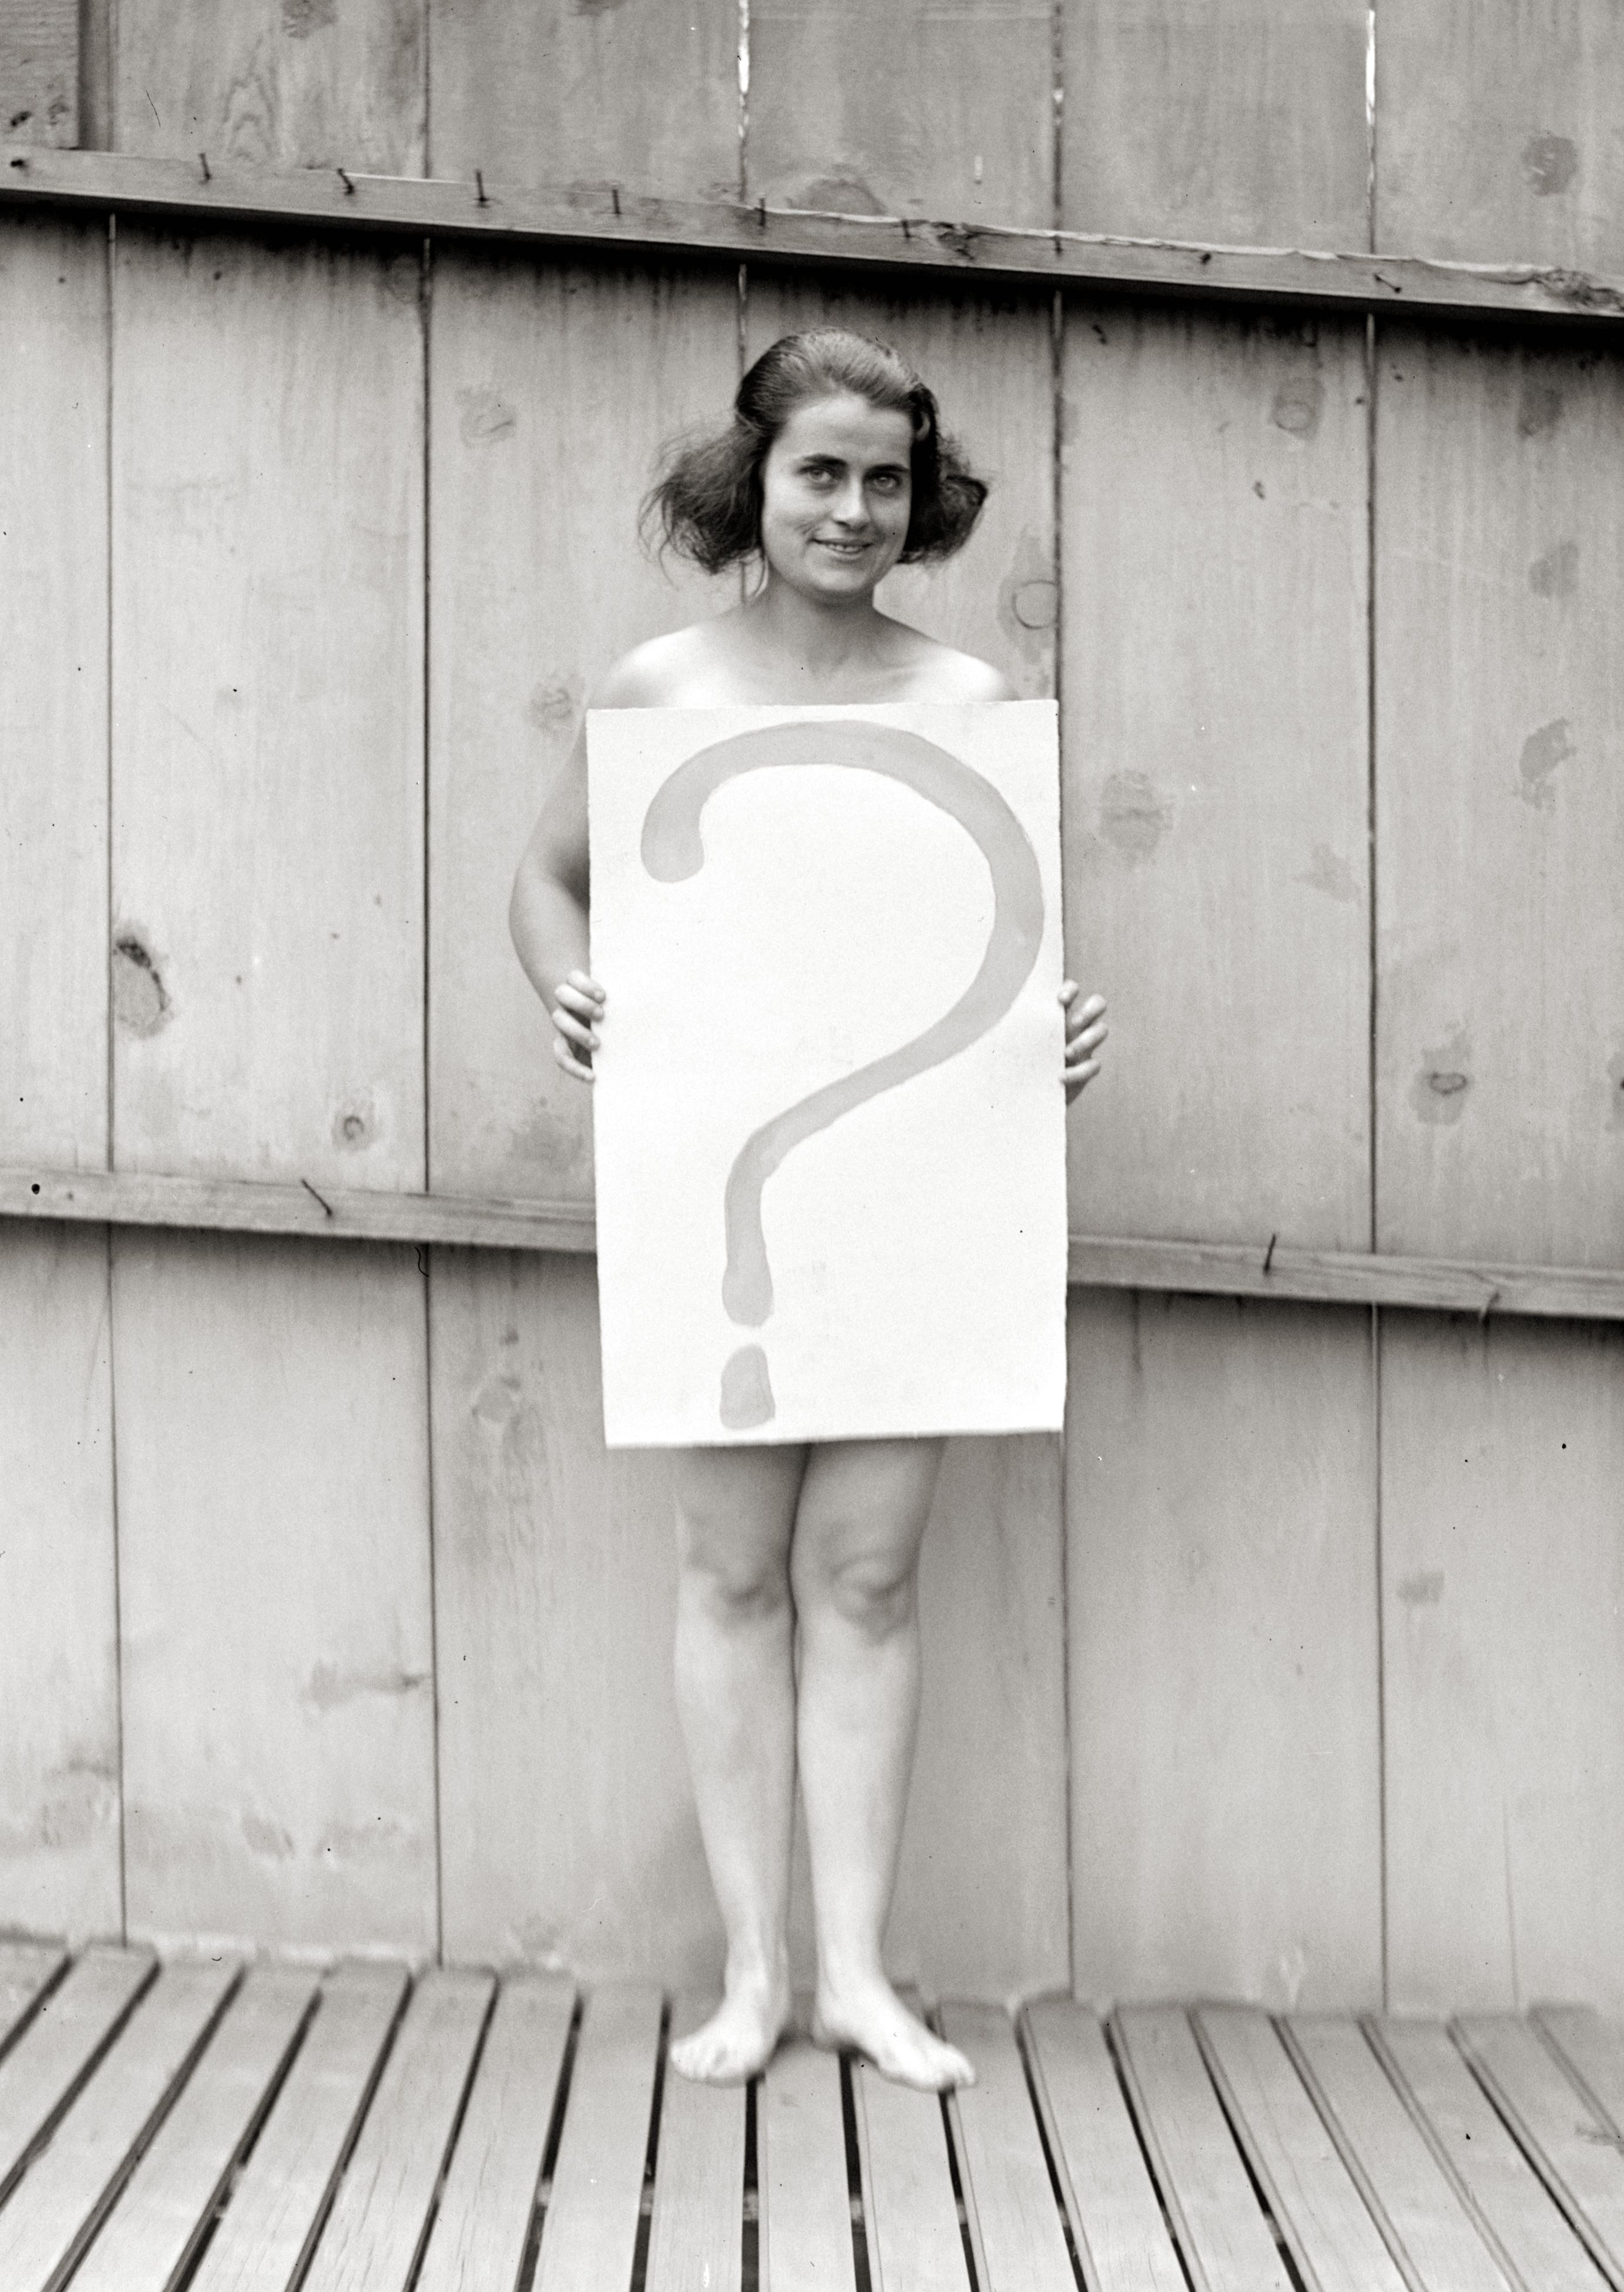 Descrizione Unclothed woman behind question mark sign.jpg